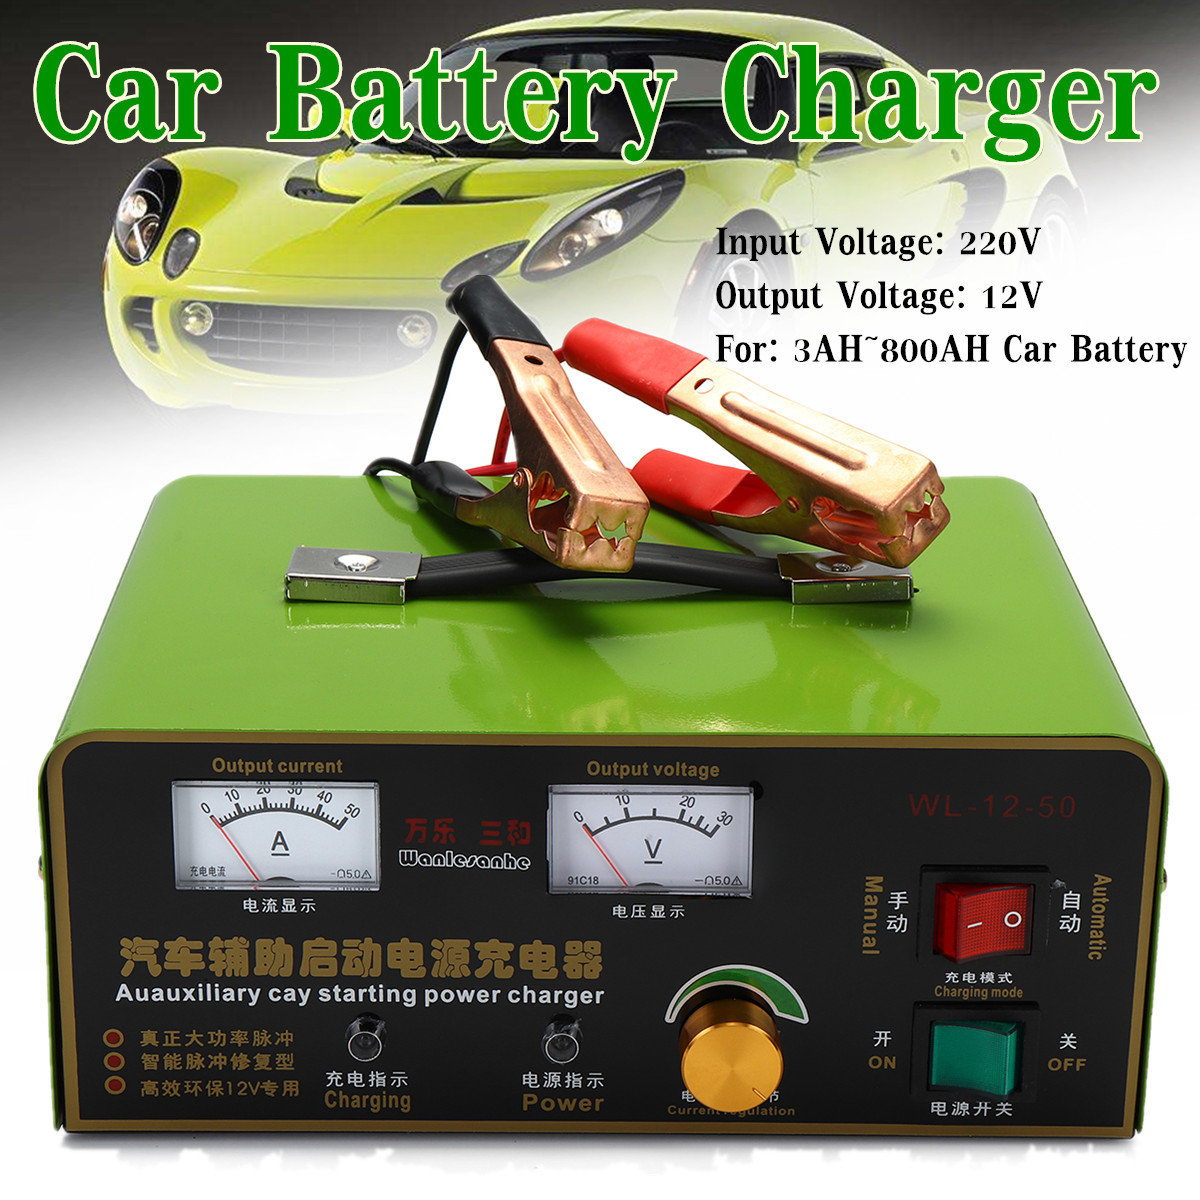 220V 12V Car Battery Charger 50A 120W US Plug Full Automatic 3-800AH Intelligent Pulse Repair Constant Current/Voltage PWM 220v 12v car battery charger 50a 120w us plug full automatic 3 800ah intelligent pulse repair constant current voltage pwm